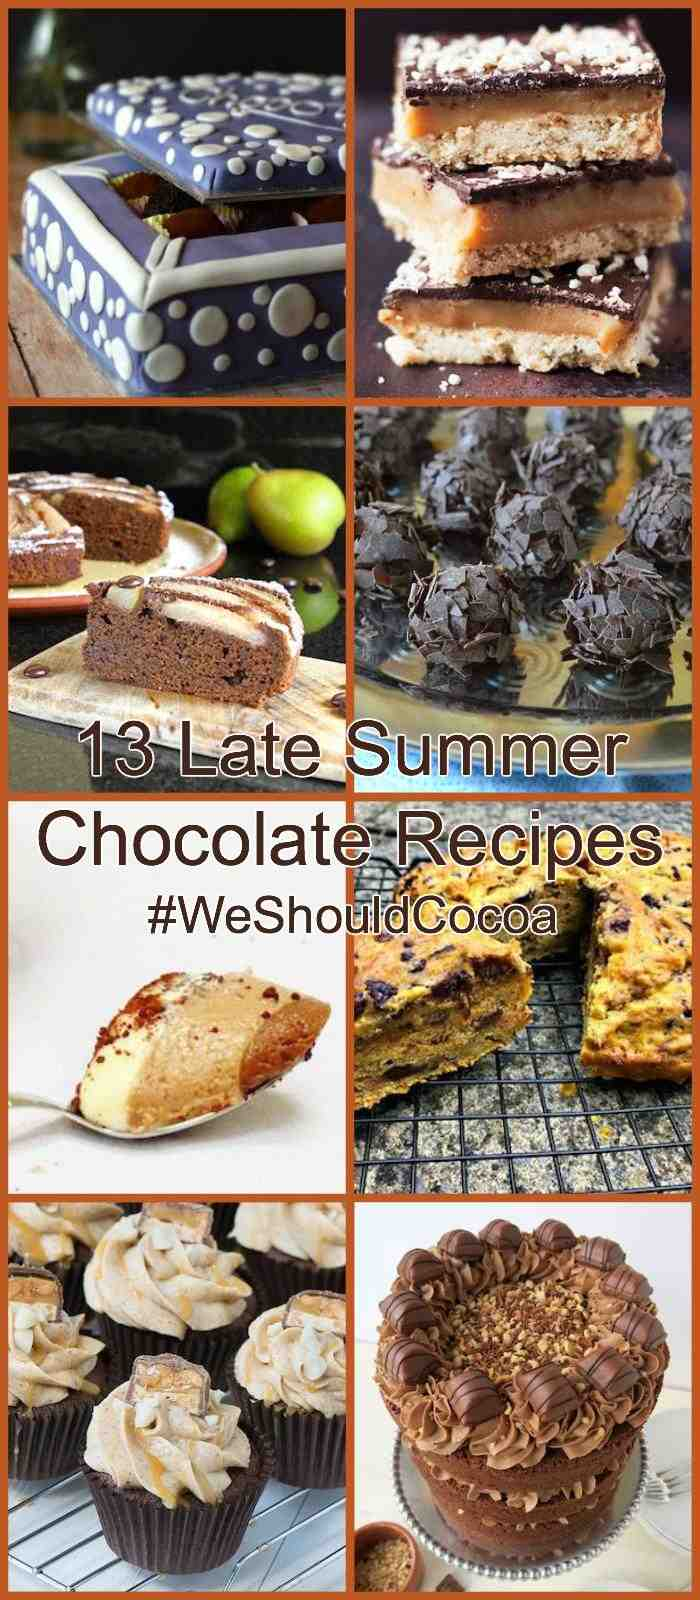 13 Late Summer Chocolate Recipes for #WeShouldCocoa